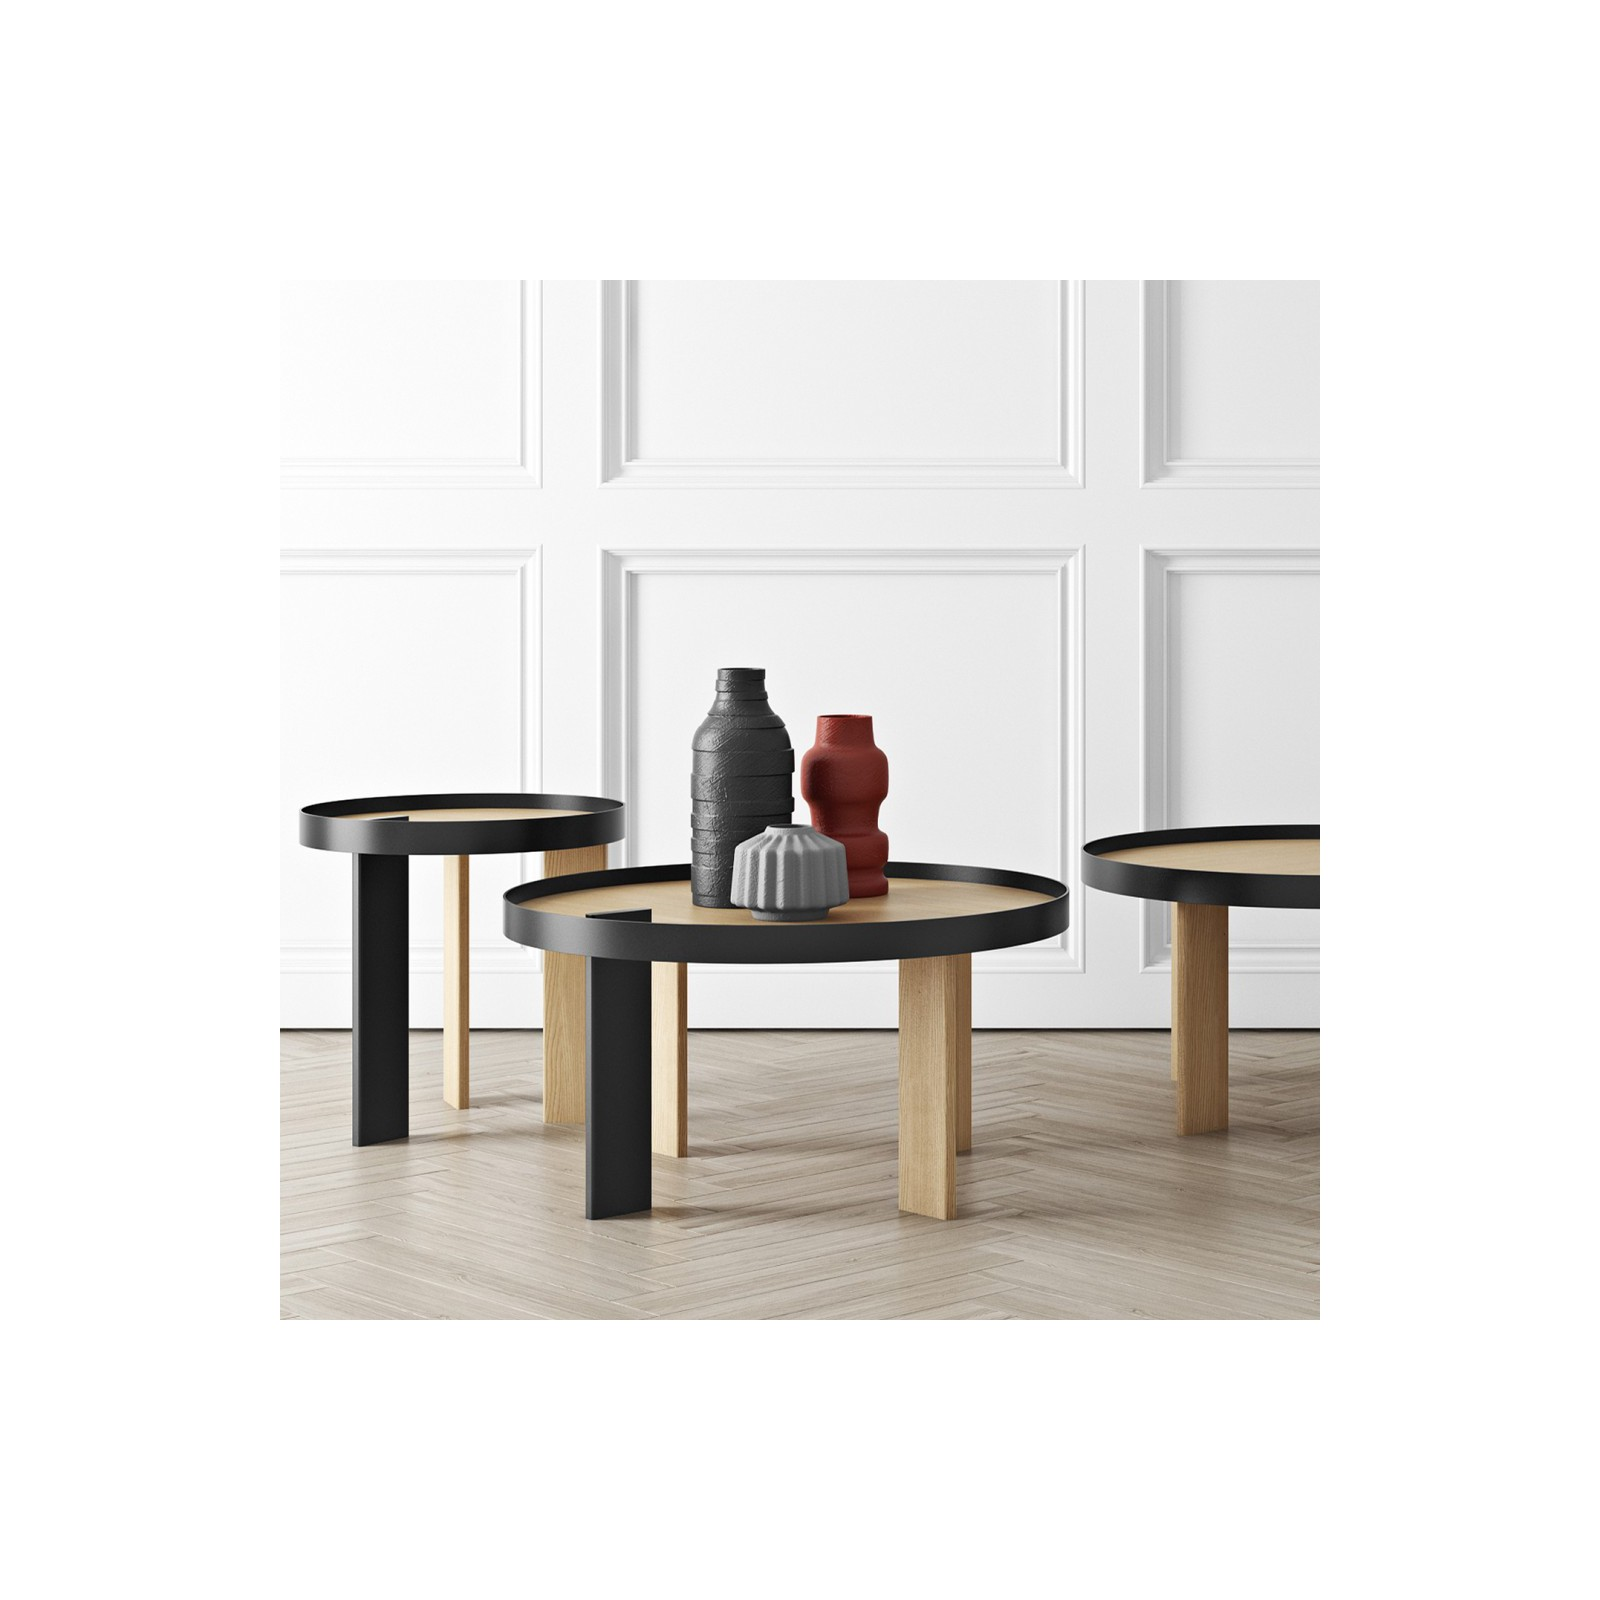 Table D Apoint Table D 39appoint Déco Arne Concept